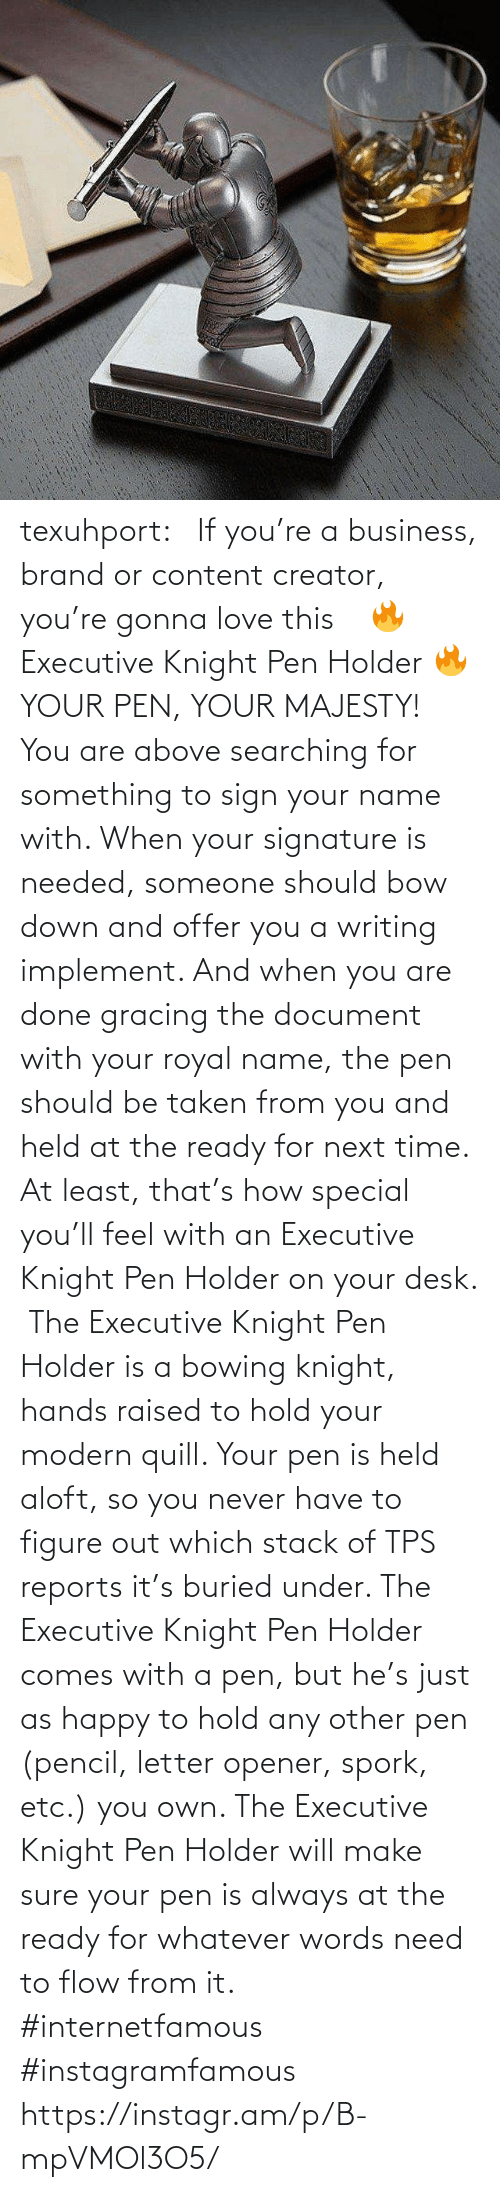 brand: texuhport:⎆ If you're a business, brand or content creator, you're gonna love this ⎆⁣ 🔥 Executive Knight Pen Holder 🔥⁣ YOUR PEN, YOUR MAJESTY!⁣ ⁣ You are above searching for something to sign your name with. When your signature is needed, someone should bow down and offer you a writing implement. And when you are done gracing the document with your royal name, the pen should be taken from you and held at the ready for next time. At least, that's how special you'll feel with an Executive Knight Pen Holder on your desk.⁣ ⁣ The Executive Knight Pen Holder is a bowing knight, hands raised to hold your modern quill. Your pen is held aloft, so you never have to figure out which stack of TPS reports it's buried under. The Executive Knight Pen Holder comes with a pen, but he's just as happy to hold any other pen (pencil, letter opener, spork, etc.) you own. The Executive Knight Pen Holder will make sure your pen is always at the ready for whatever words need to flow from it.⁣ #internetfamous  #instagramfamous https://instagr.am/p/B-mpVMOl3O5/